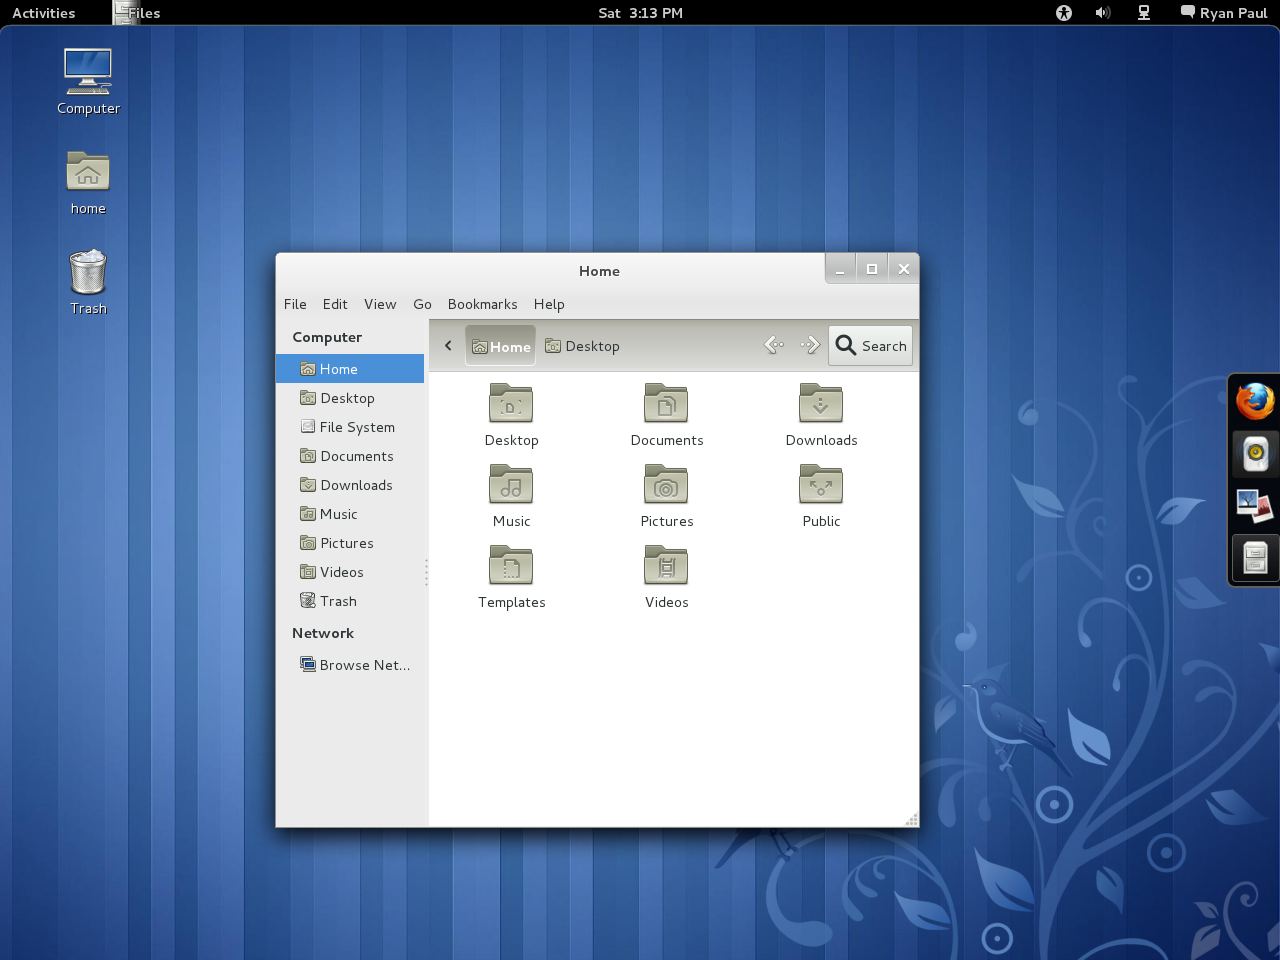 Four tweaks to bring back missing functionality in GNOME 3.0